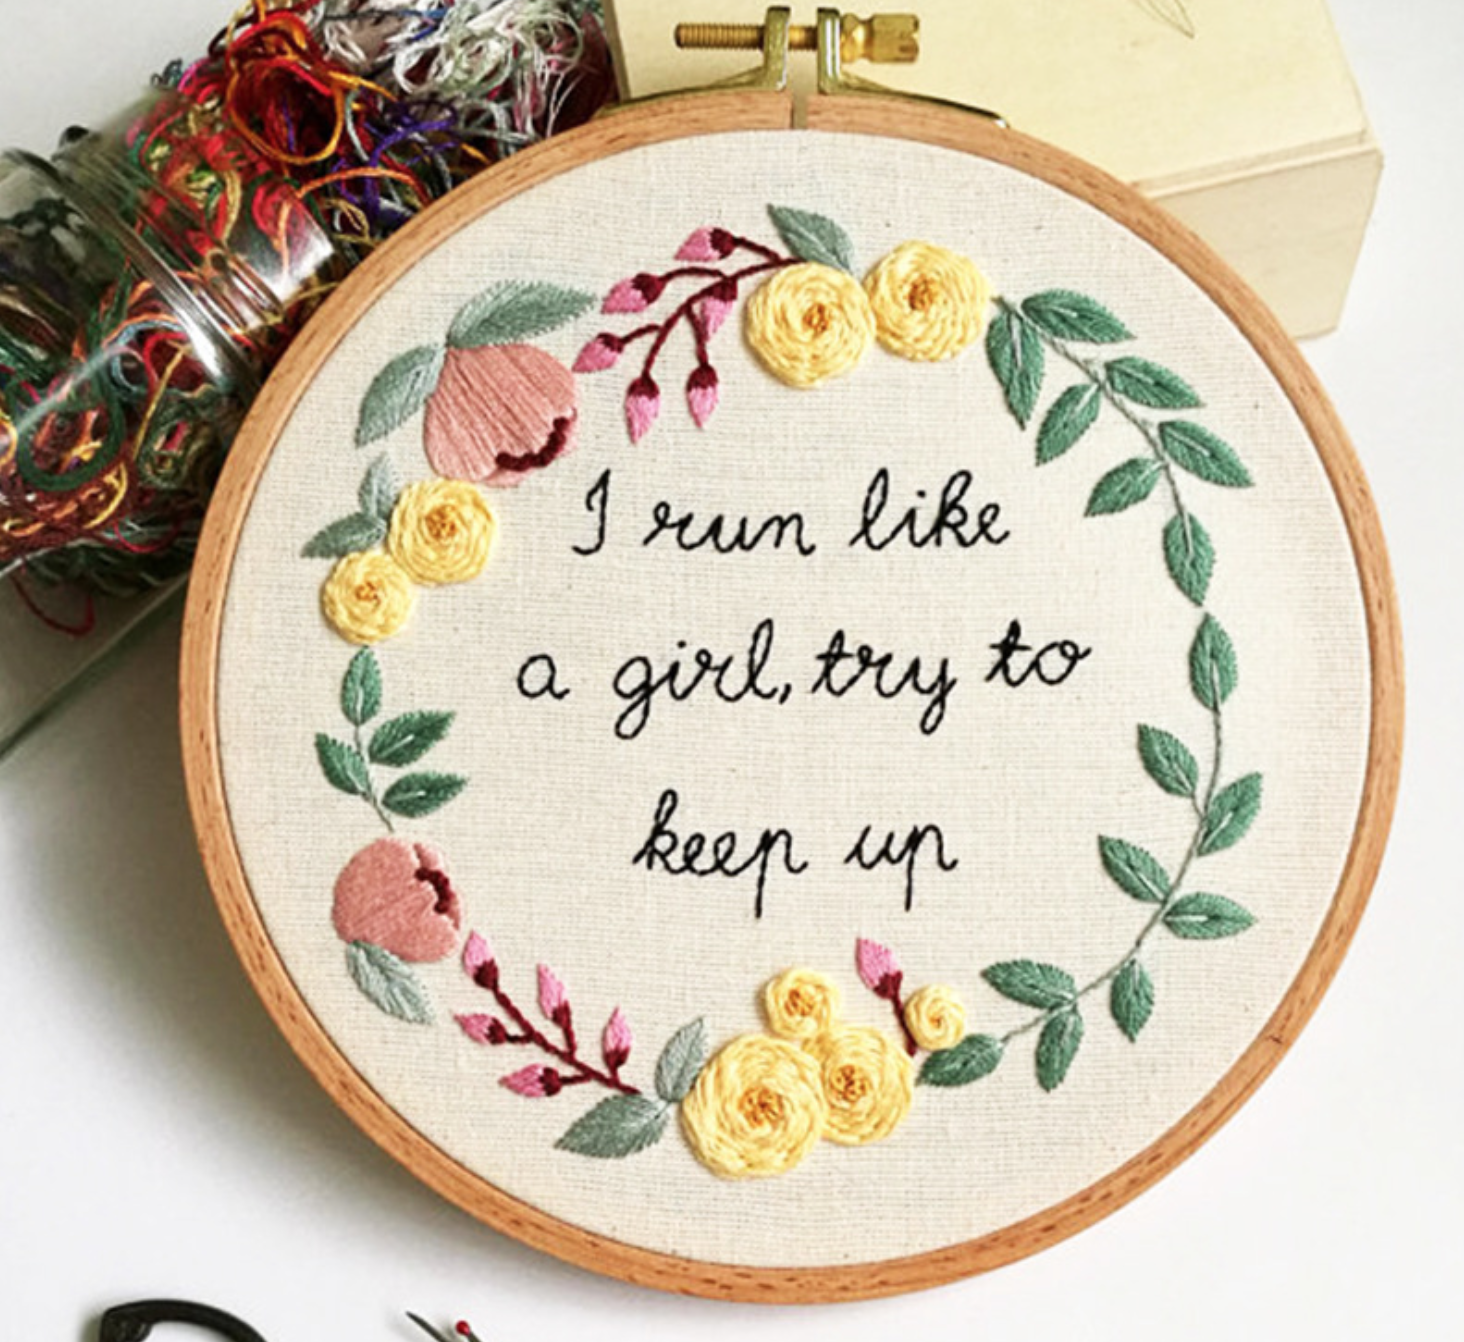 Keep Up Embroidery